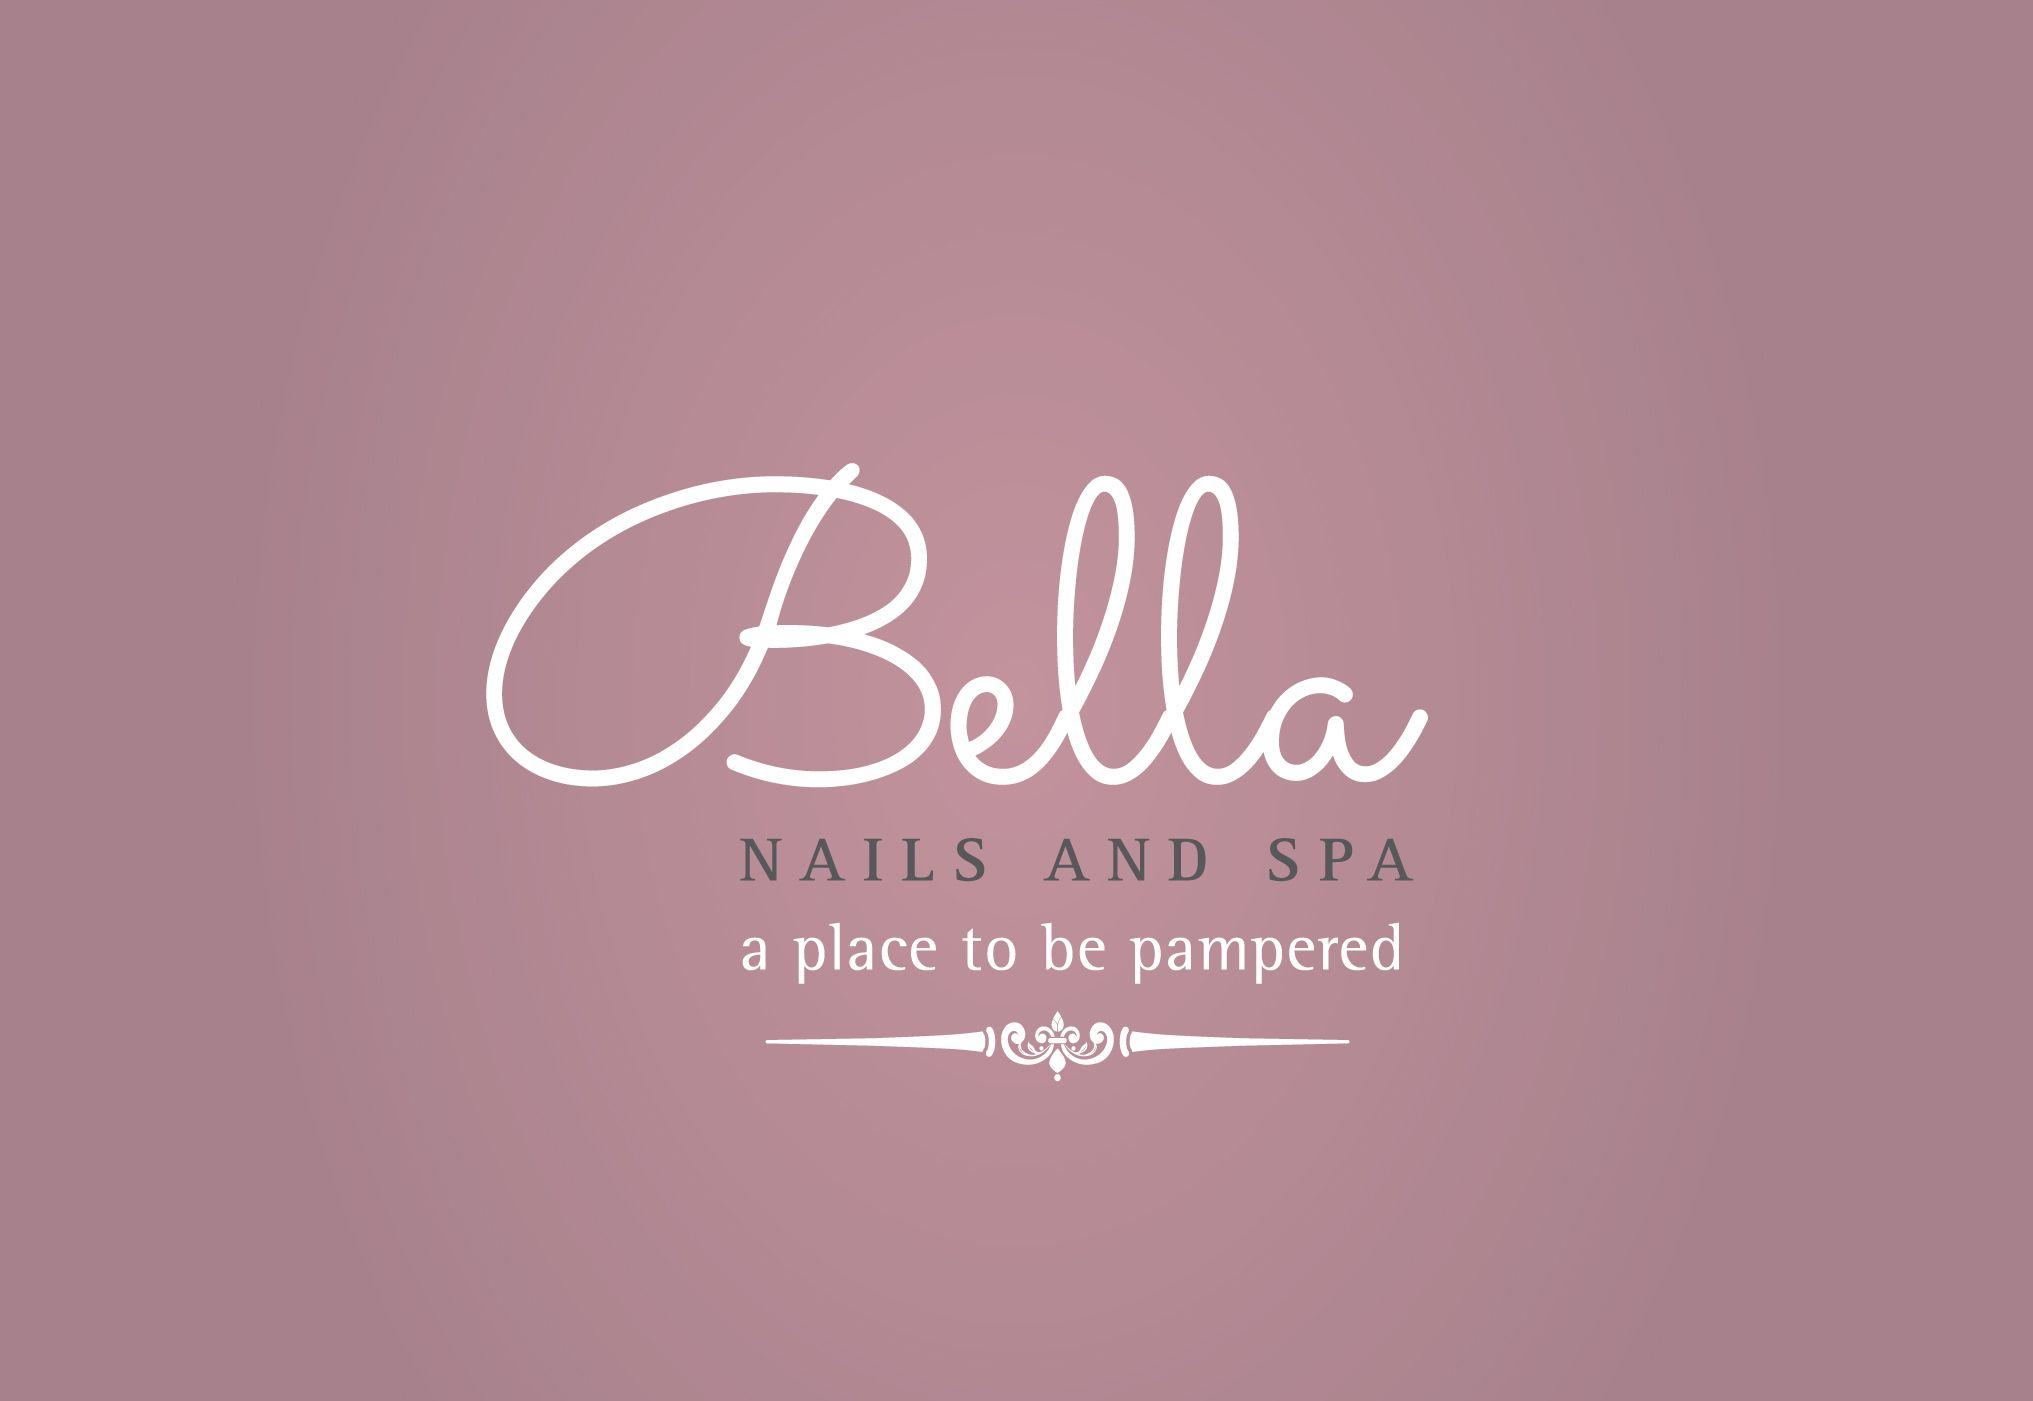 Nombres De Salones De Belleza Bella Nail And Spa Selected Logo Nail Salon Logo De